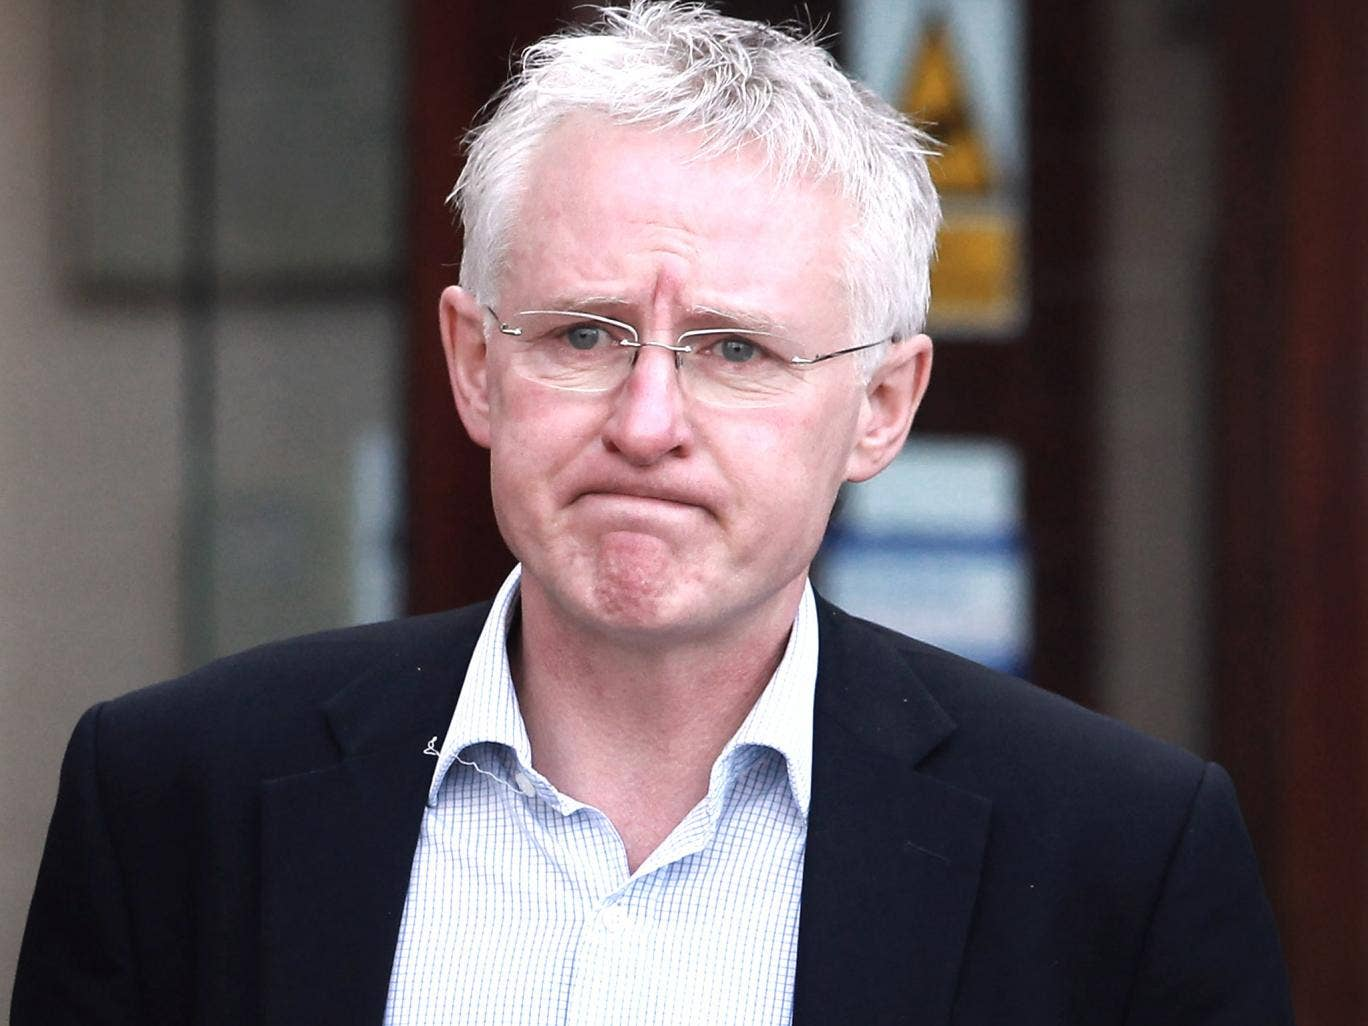 The Government's Care and Support Minister minister Norman Lamb